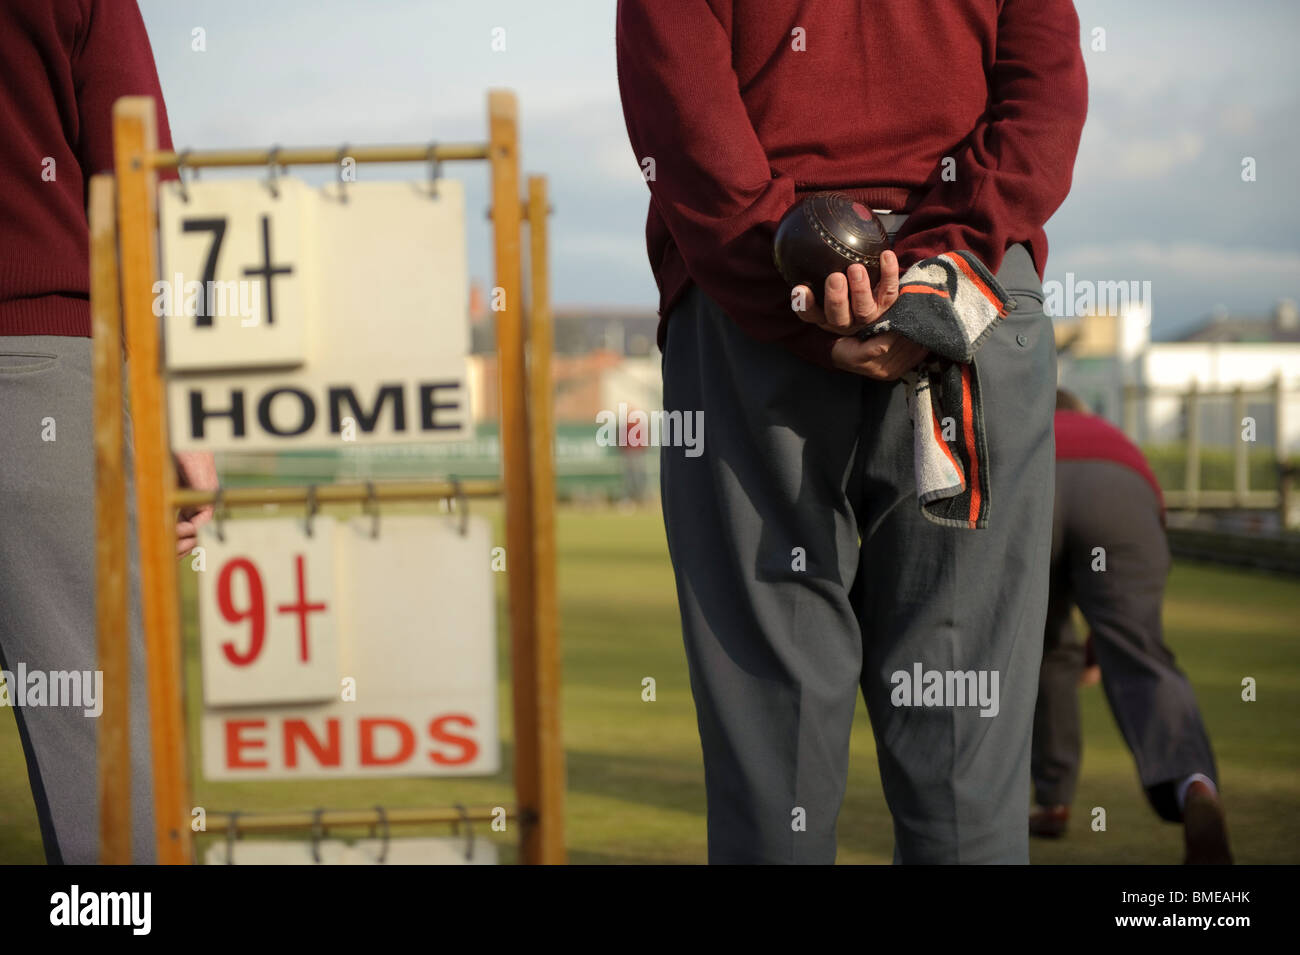 rear view of middle aged Men playing a game of lawn green bowls on a summer evening, Aberystwyth Wales UK - Stock Image